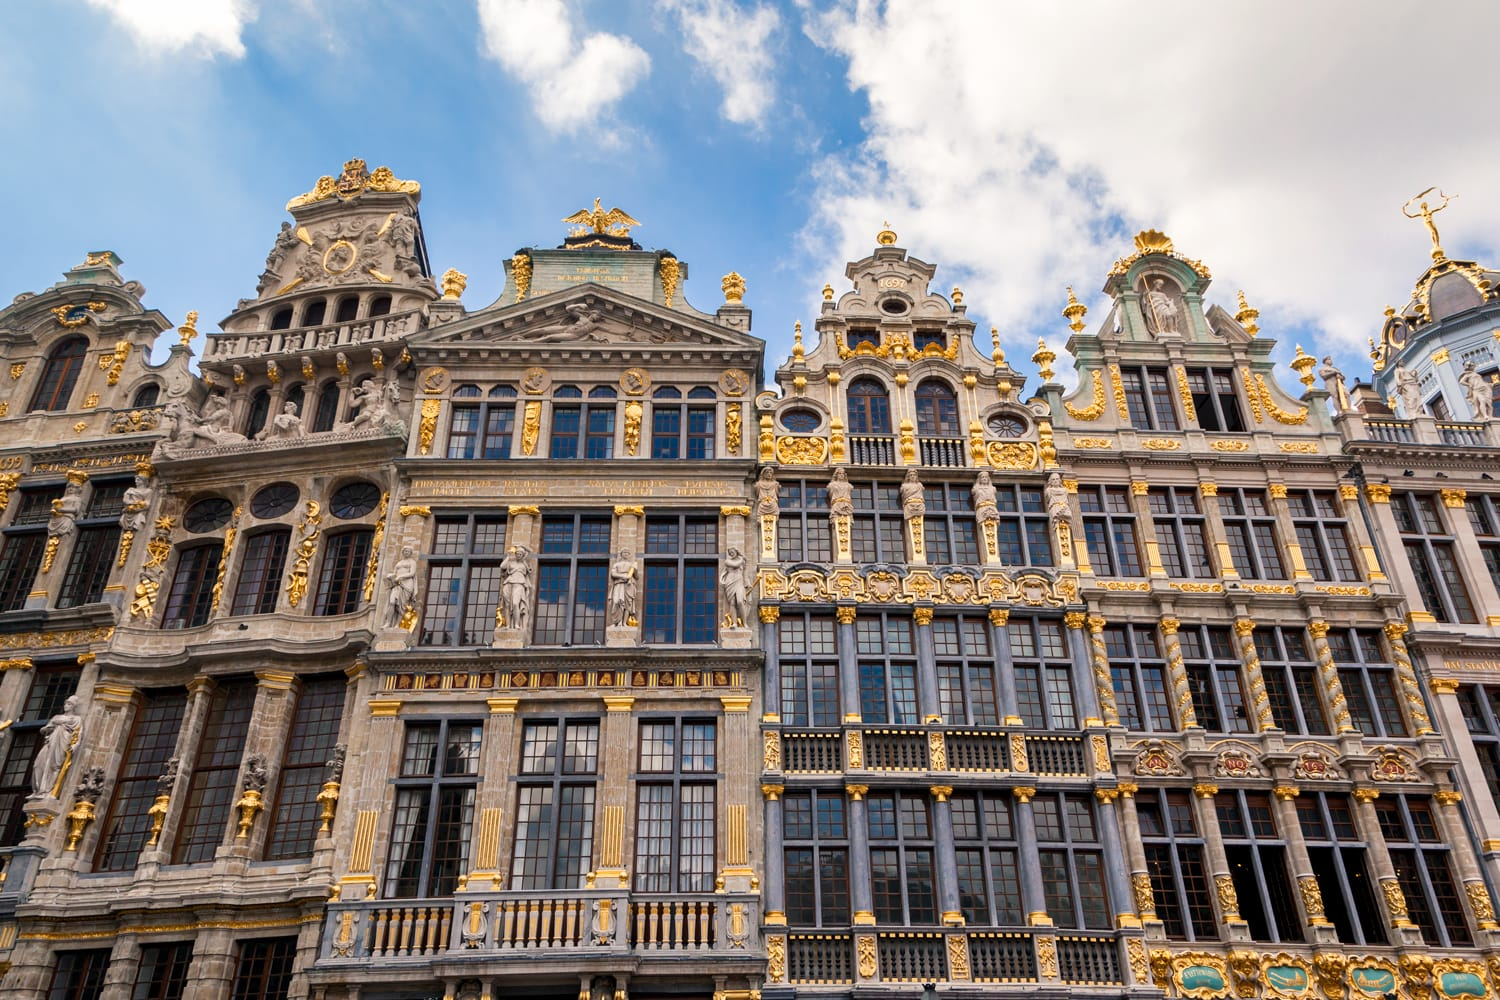 Buildings at the Grand place central square, old town of Brussels, Belgium